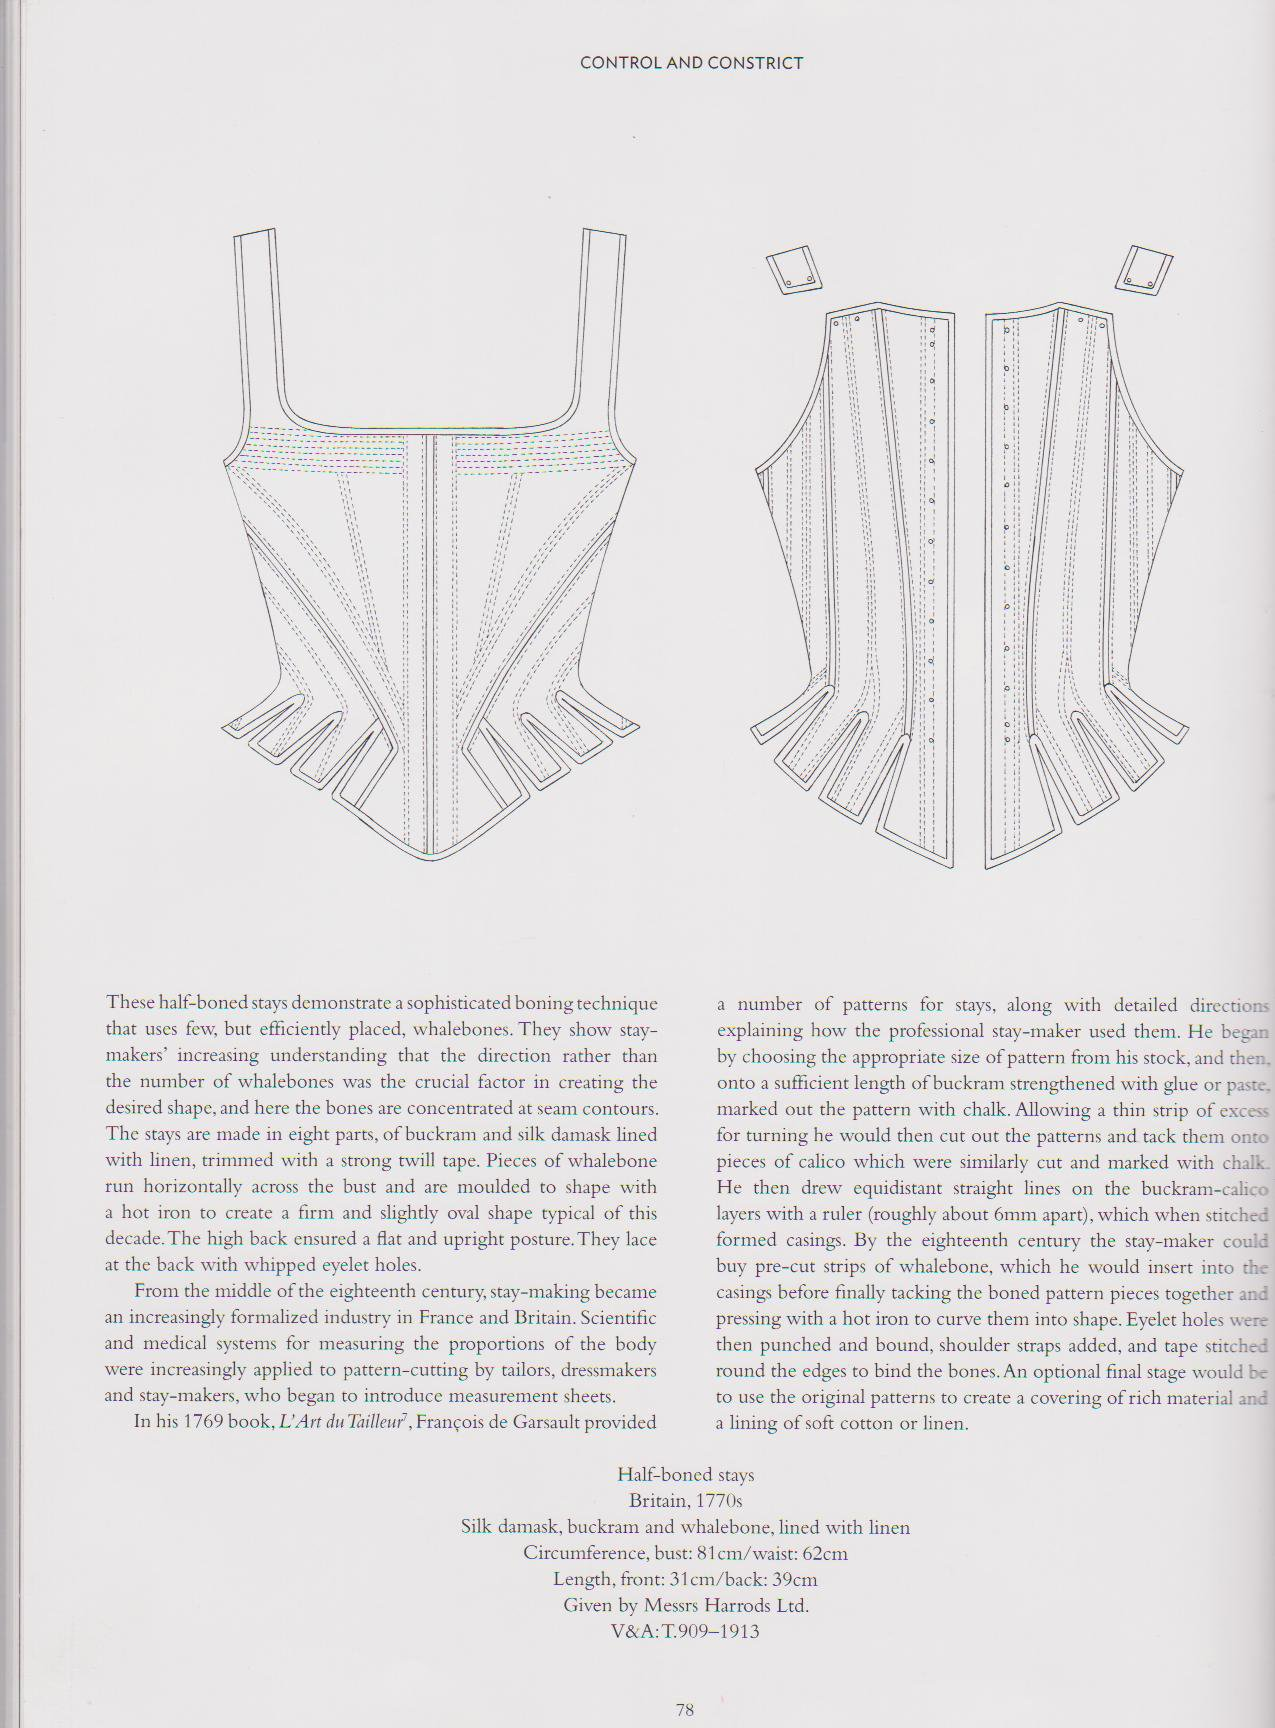 400 Years of Fashion - V&A Book - Inner Page 2 - HandBound Costumes Bibliography